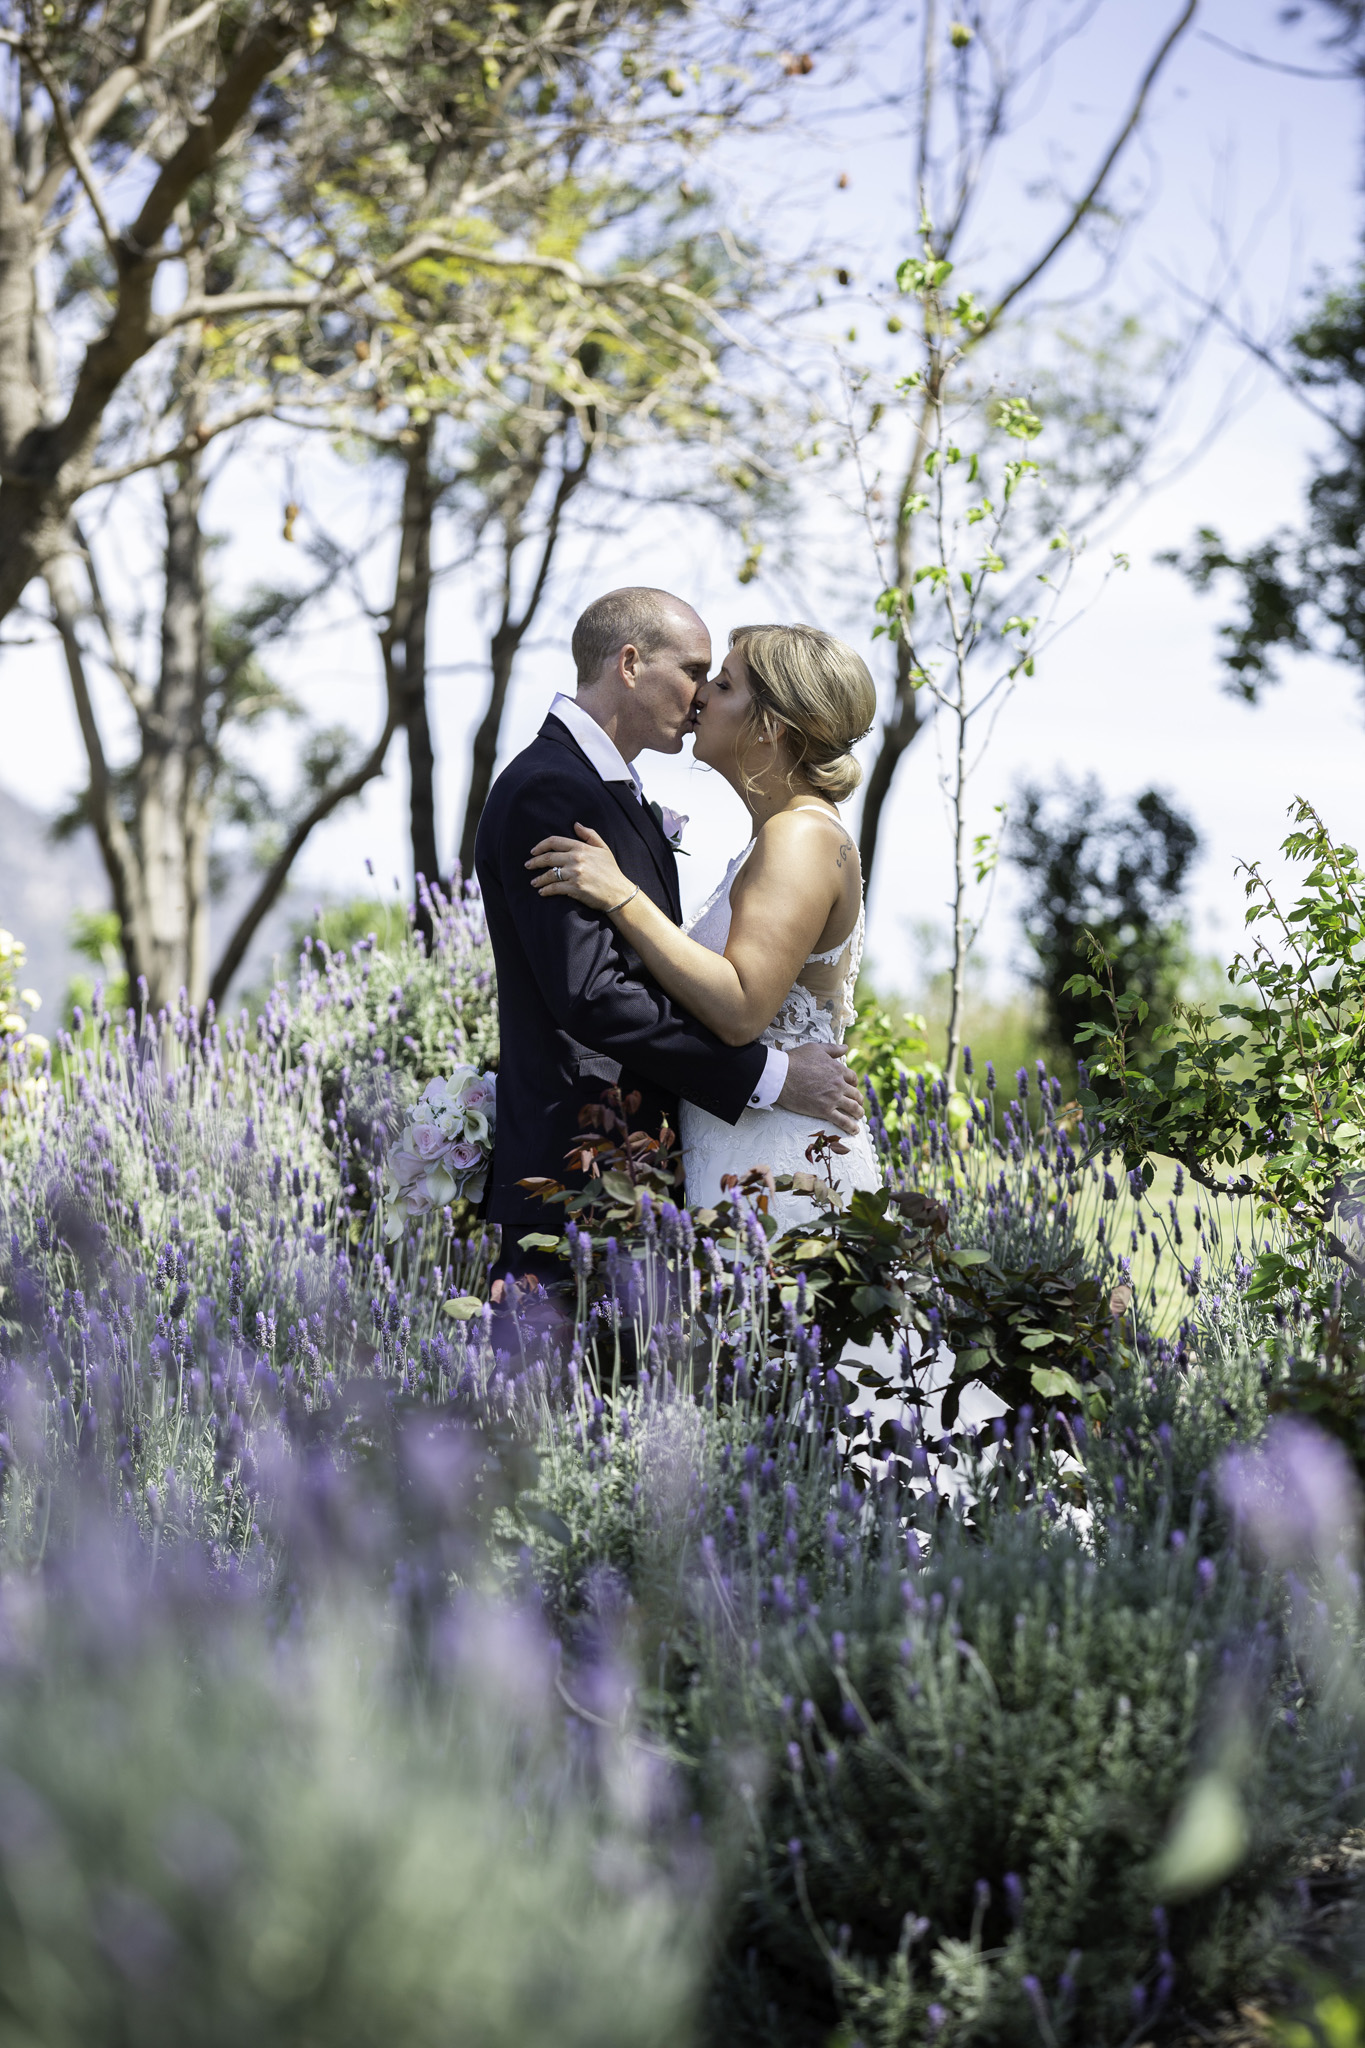 ArtyJ Photography | Country Elopement Packages NSW, Hunter Valley Elopement, Elope Hunter Valley, Hunter Valley Trish Wise, Hunter Valley Wedding Photographer, Elope, Elope in the Vines, Worthingtons Vineyard, Elopement, Spring Elopement, Pokolbin, Australia, NSW | Laura & Mathew | Elopement